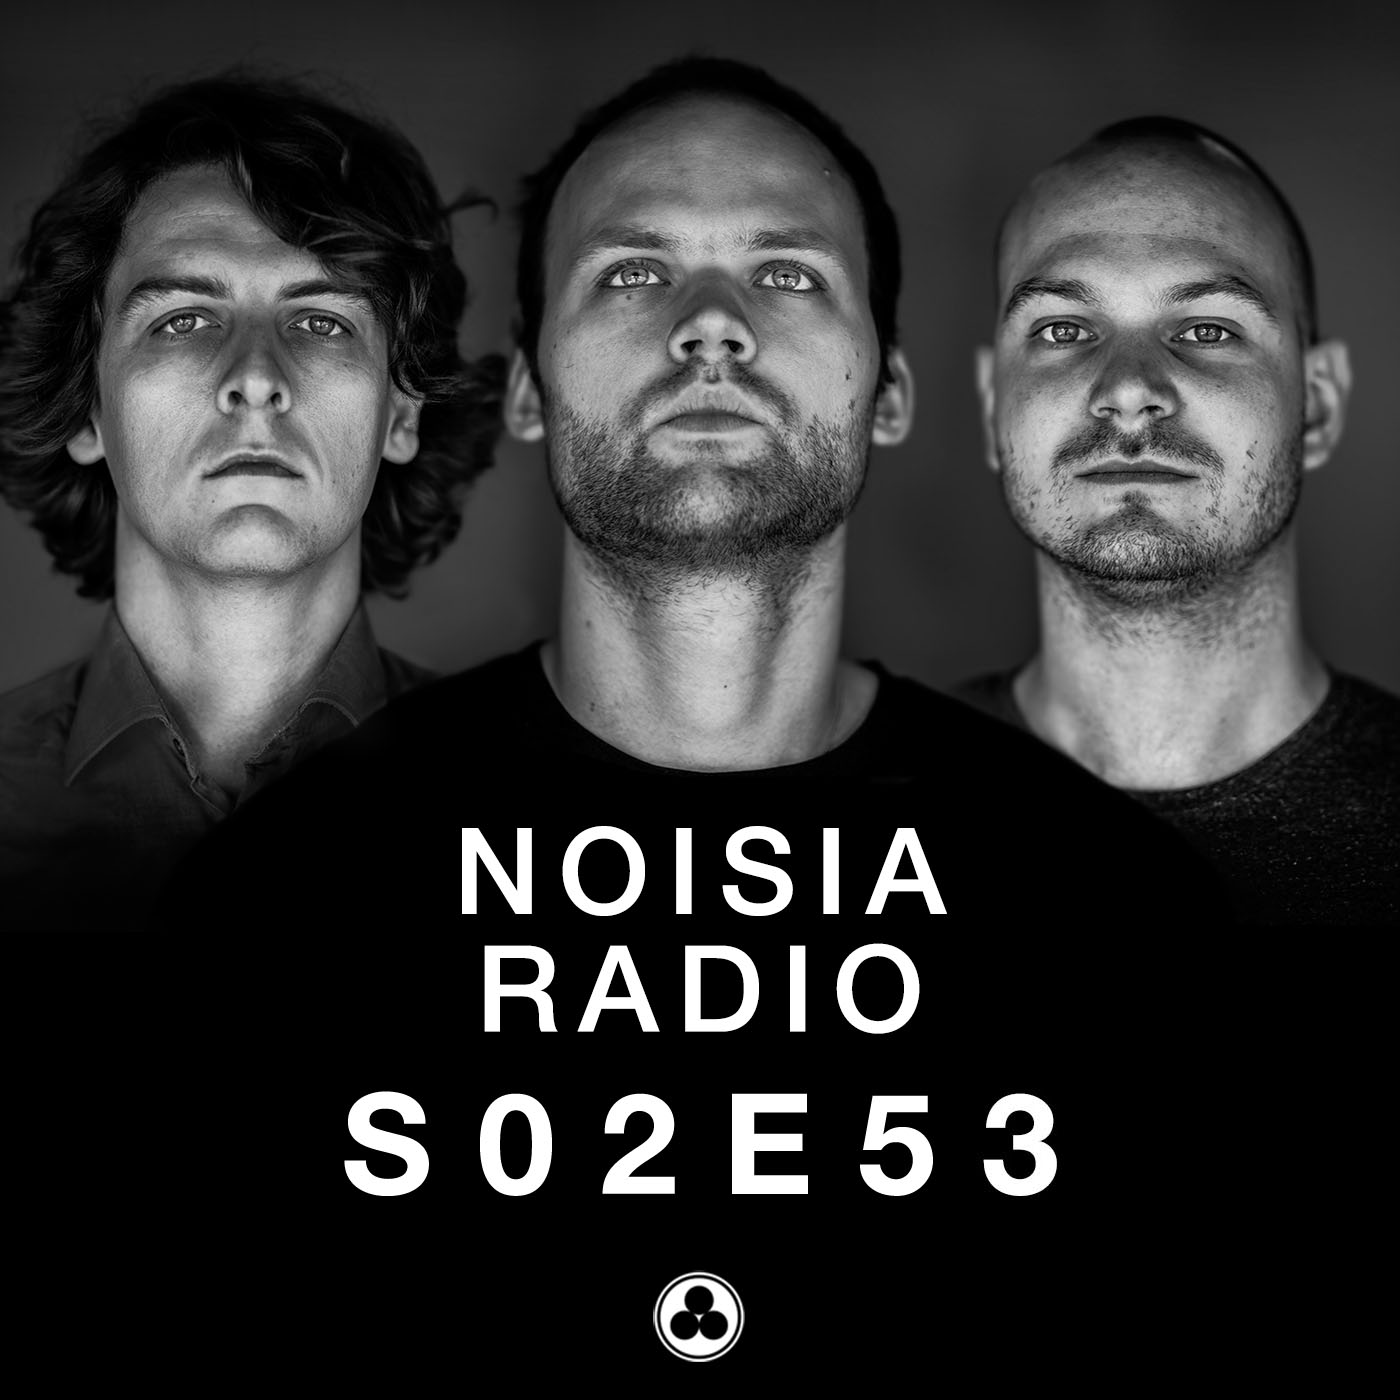 Noisia Radio S02E53